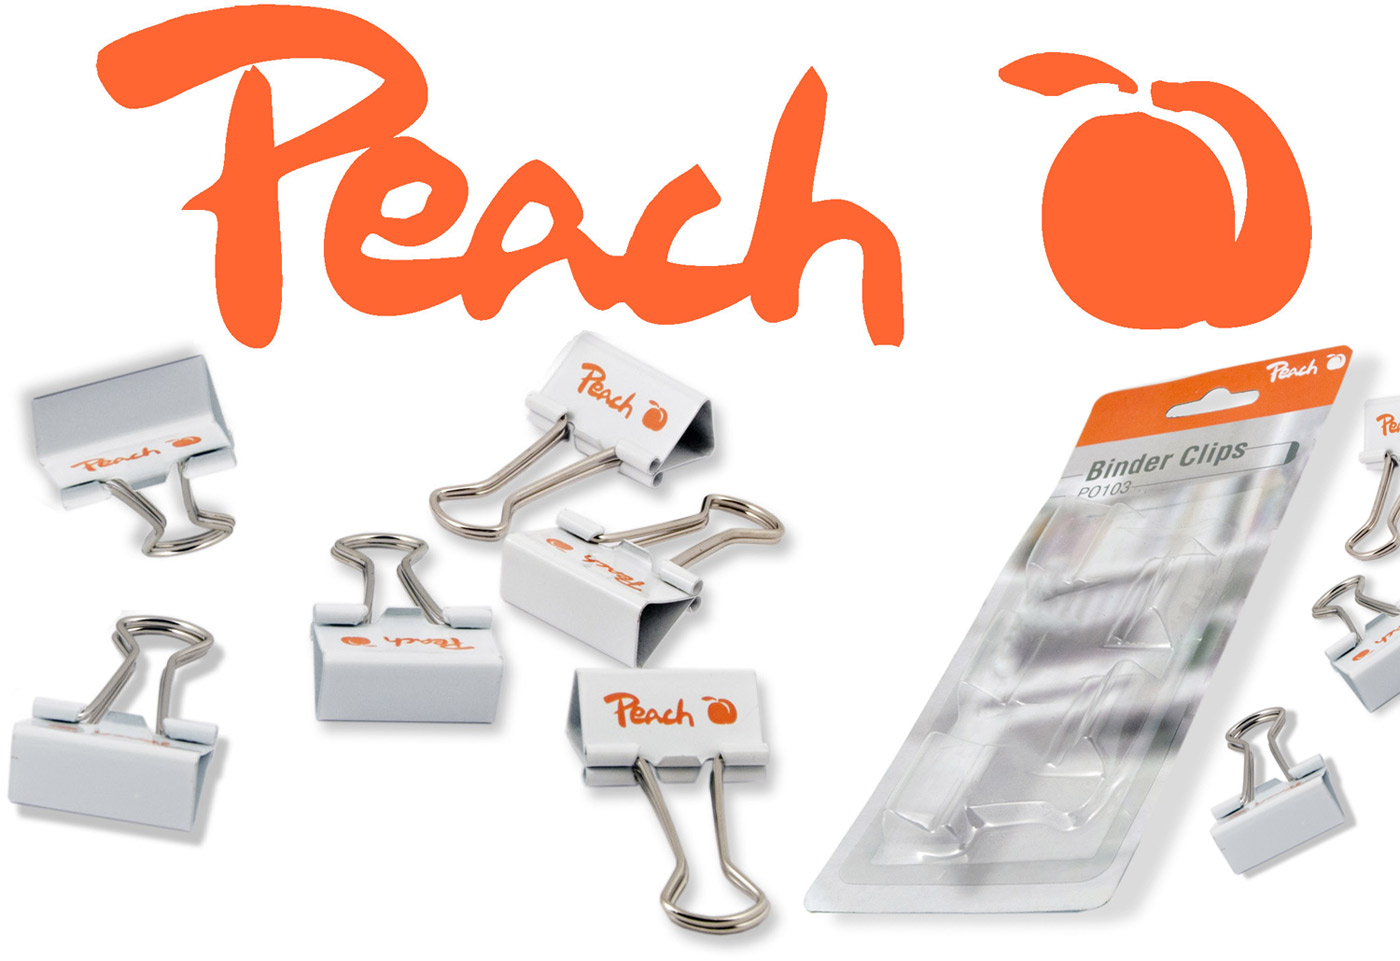 Peach Binder Clips